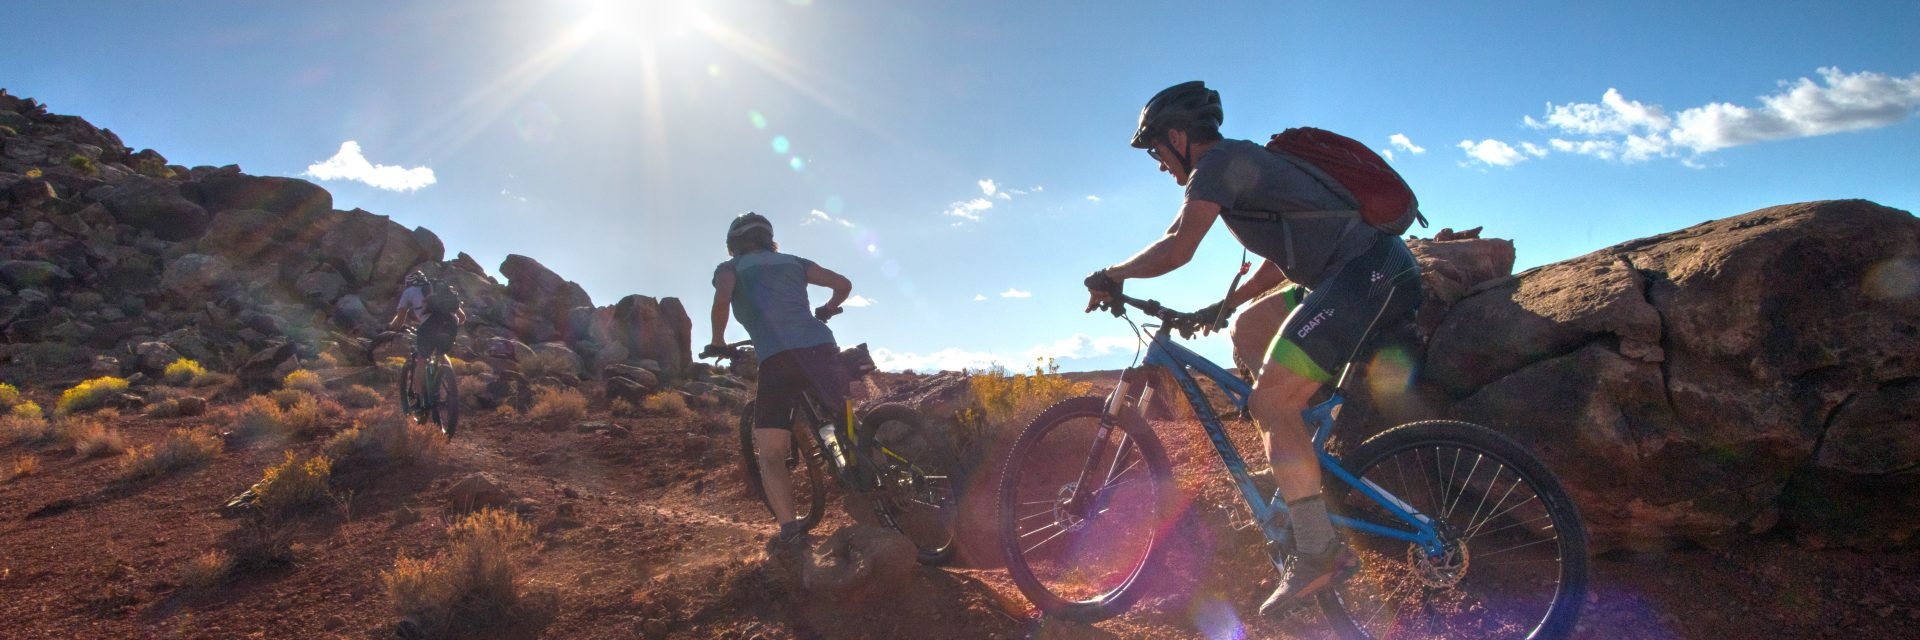 A guide leads his group of mountain bikers up a climb at the beginning of Borderline Trail in Klonzo Area north of Moab, UT